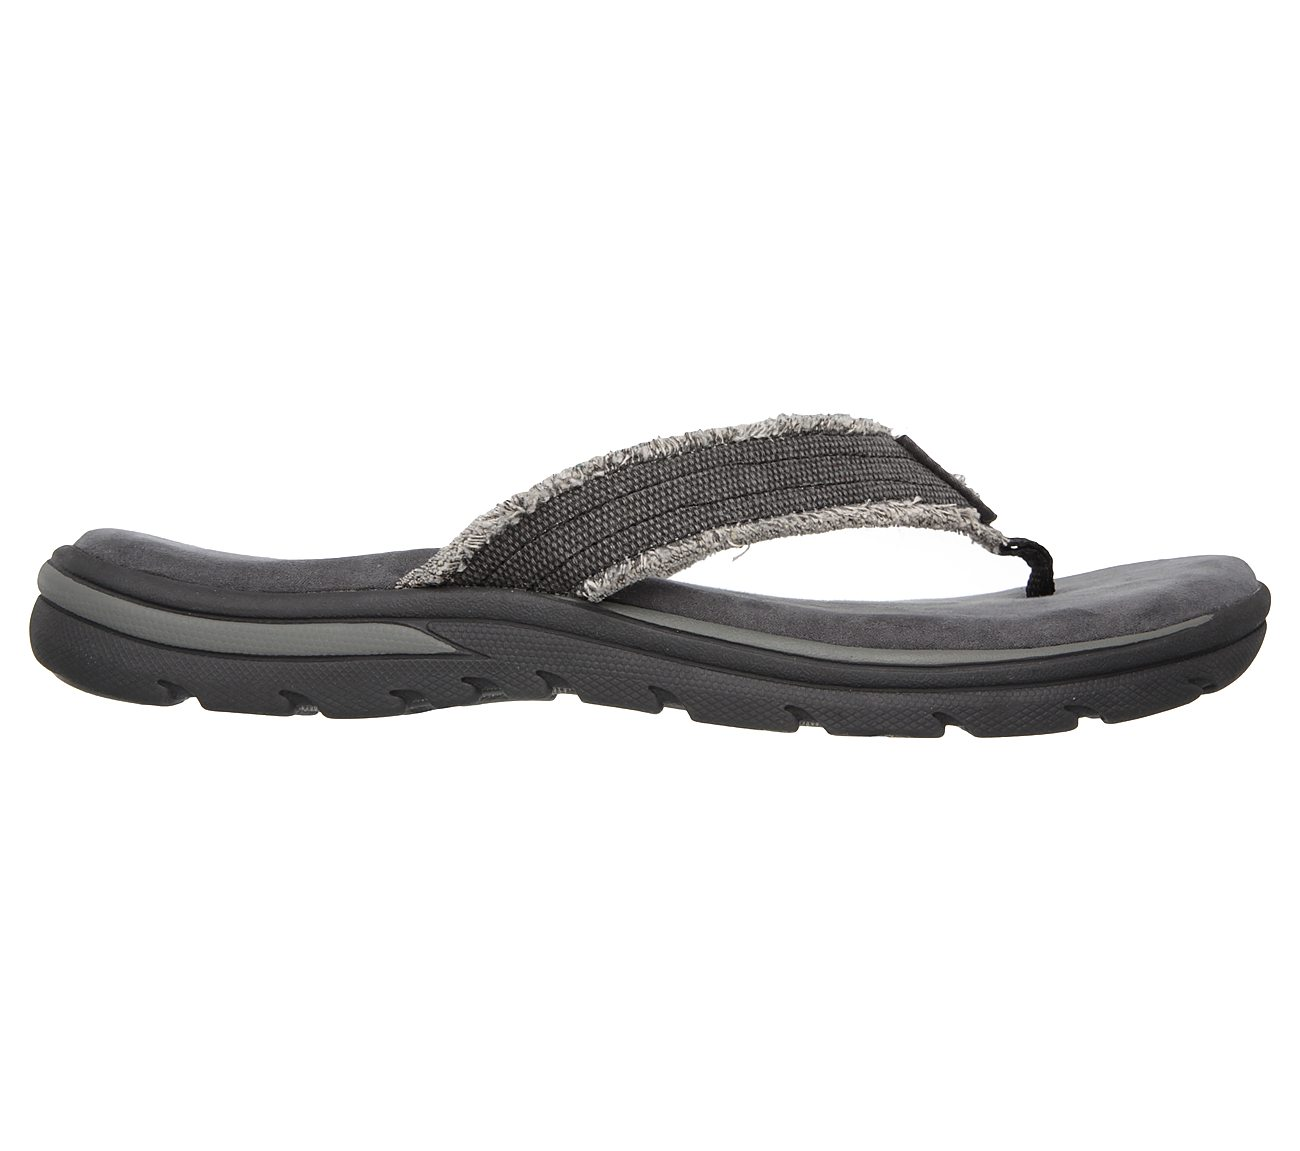 859c1ed82f889a Buy SKECHERS Relaxed Fit  Supreme - Bosnia Modern Comfort Shoes only ...